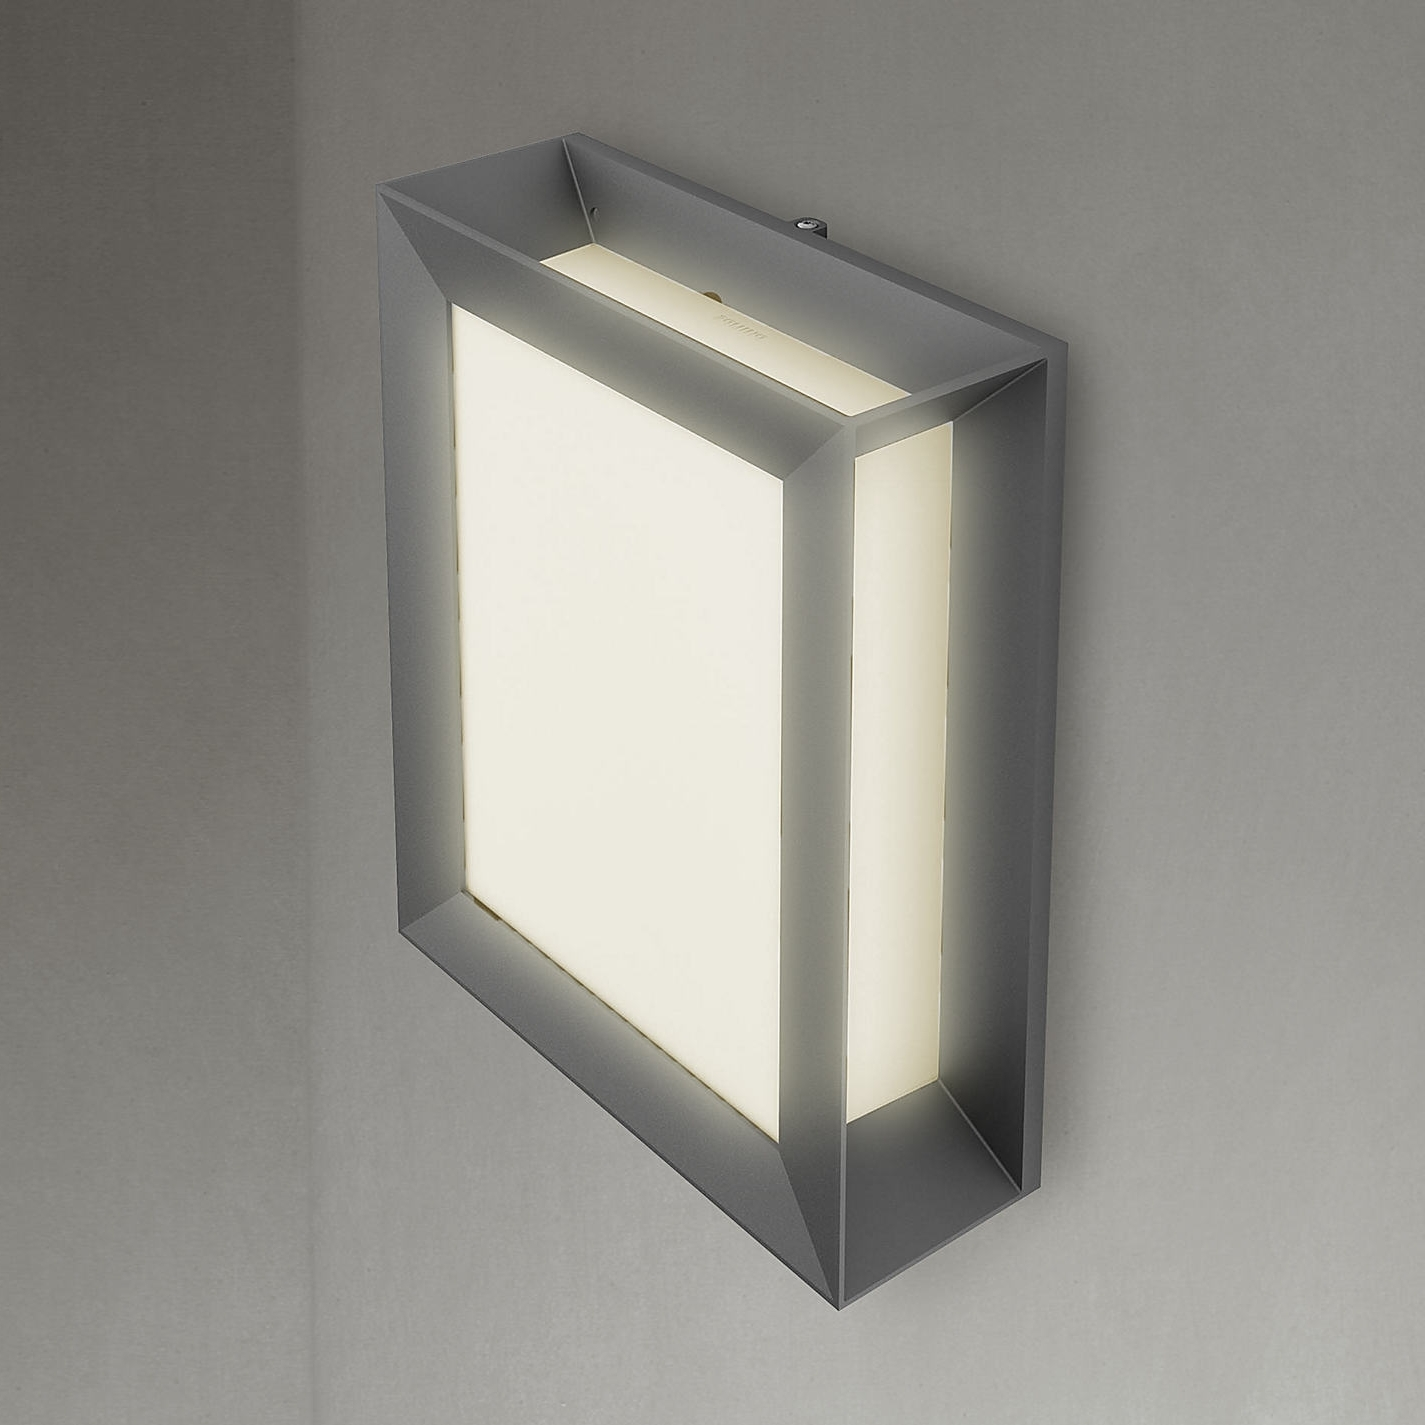 Newest Elegant Outdoor Wall Lighting Intended For Buy Philips Karp Led Outdoor Wall Light Anthracite John Lewis (View 17 of 20)